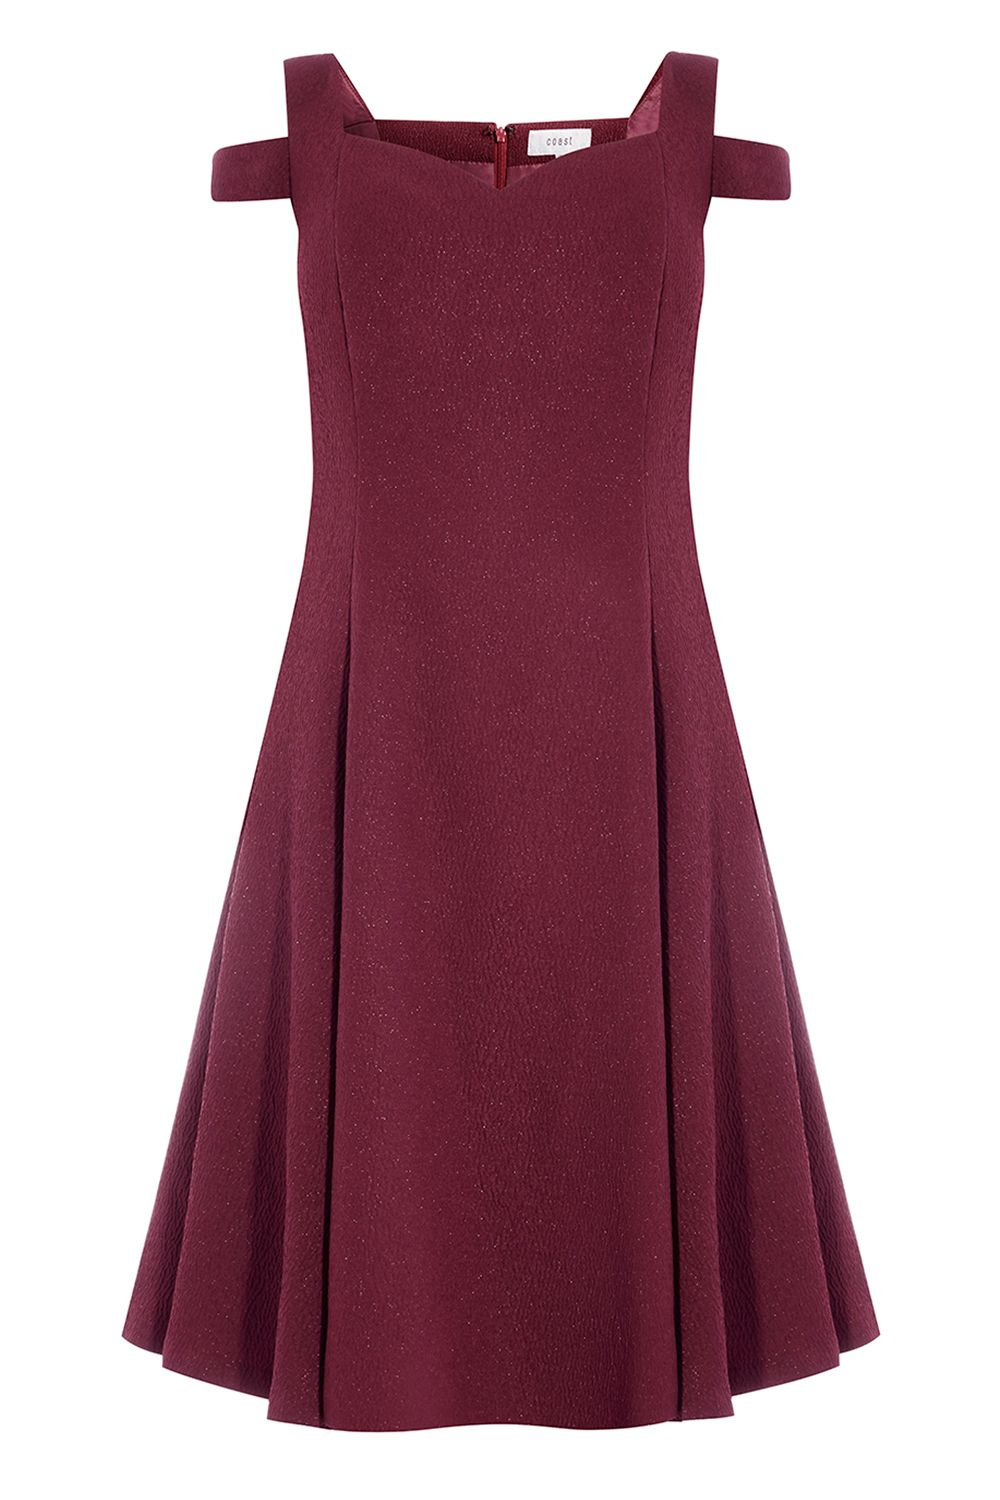 Coast Ava Short Bridesmaids Dress, Maroon